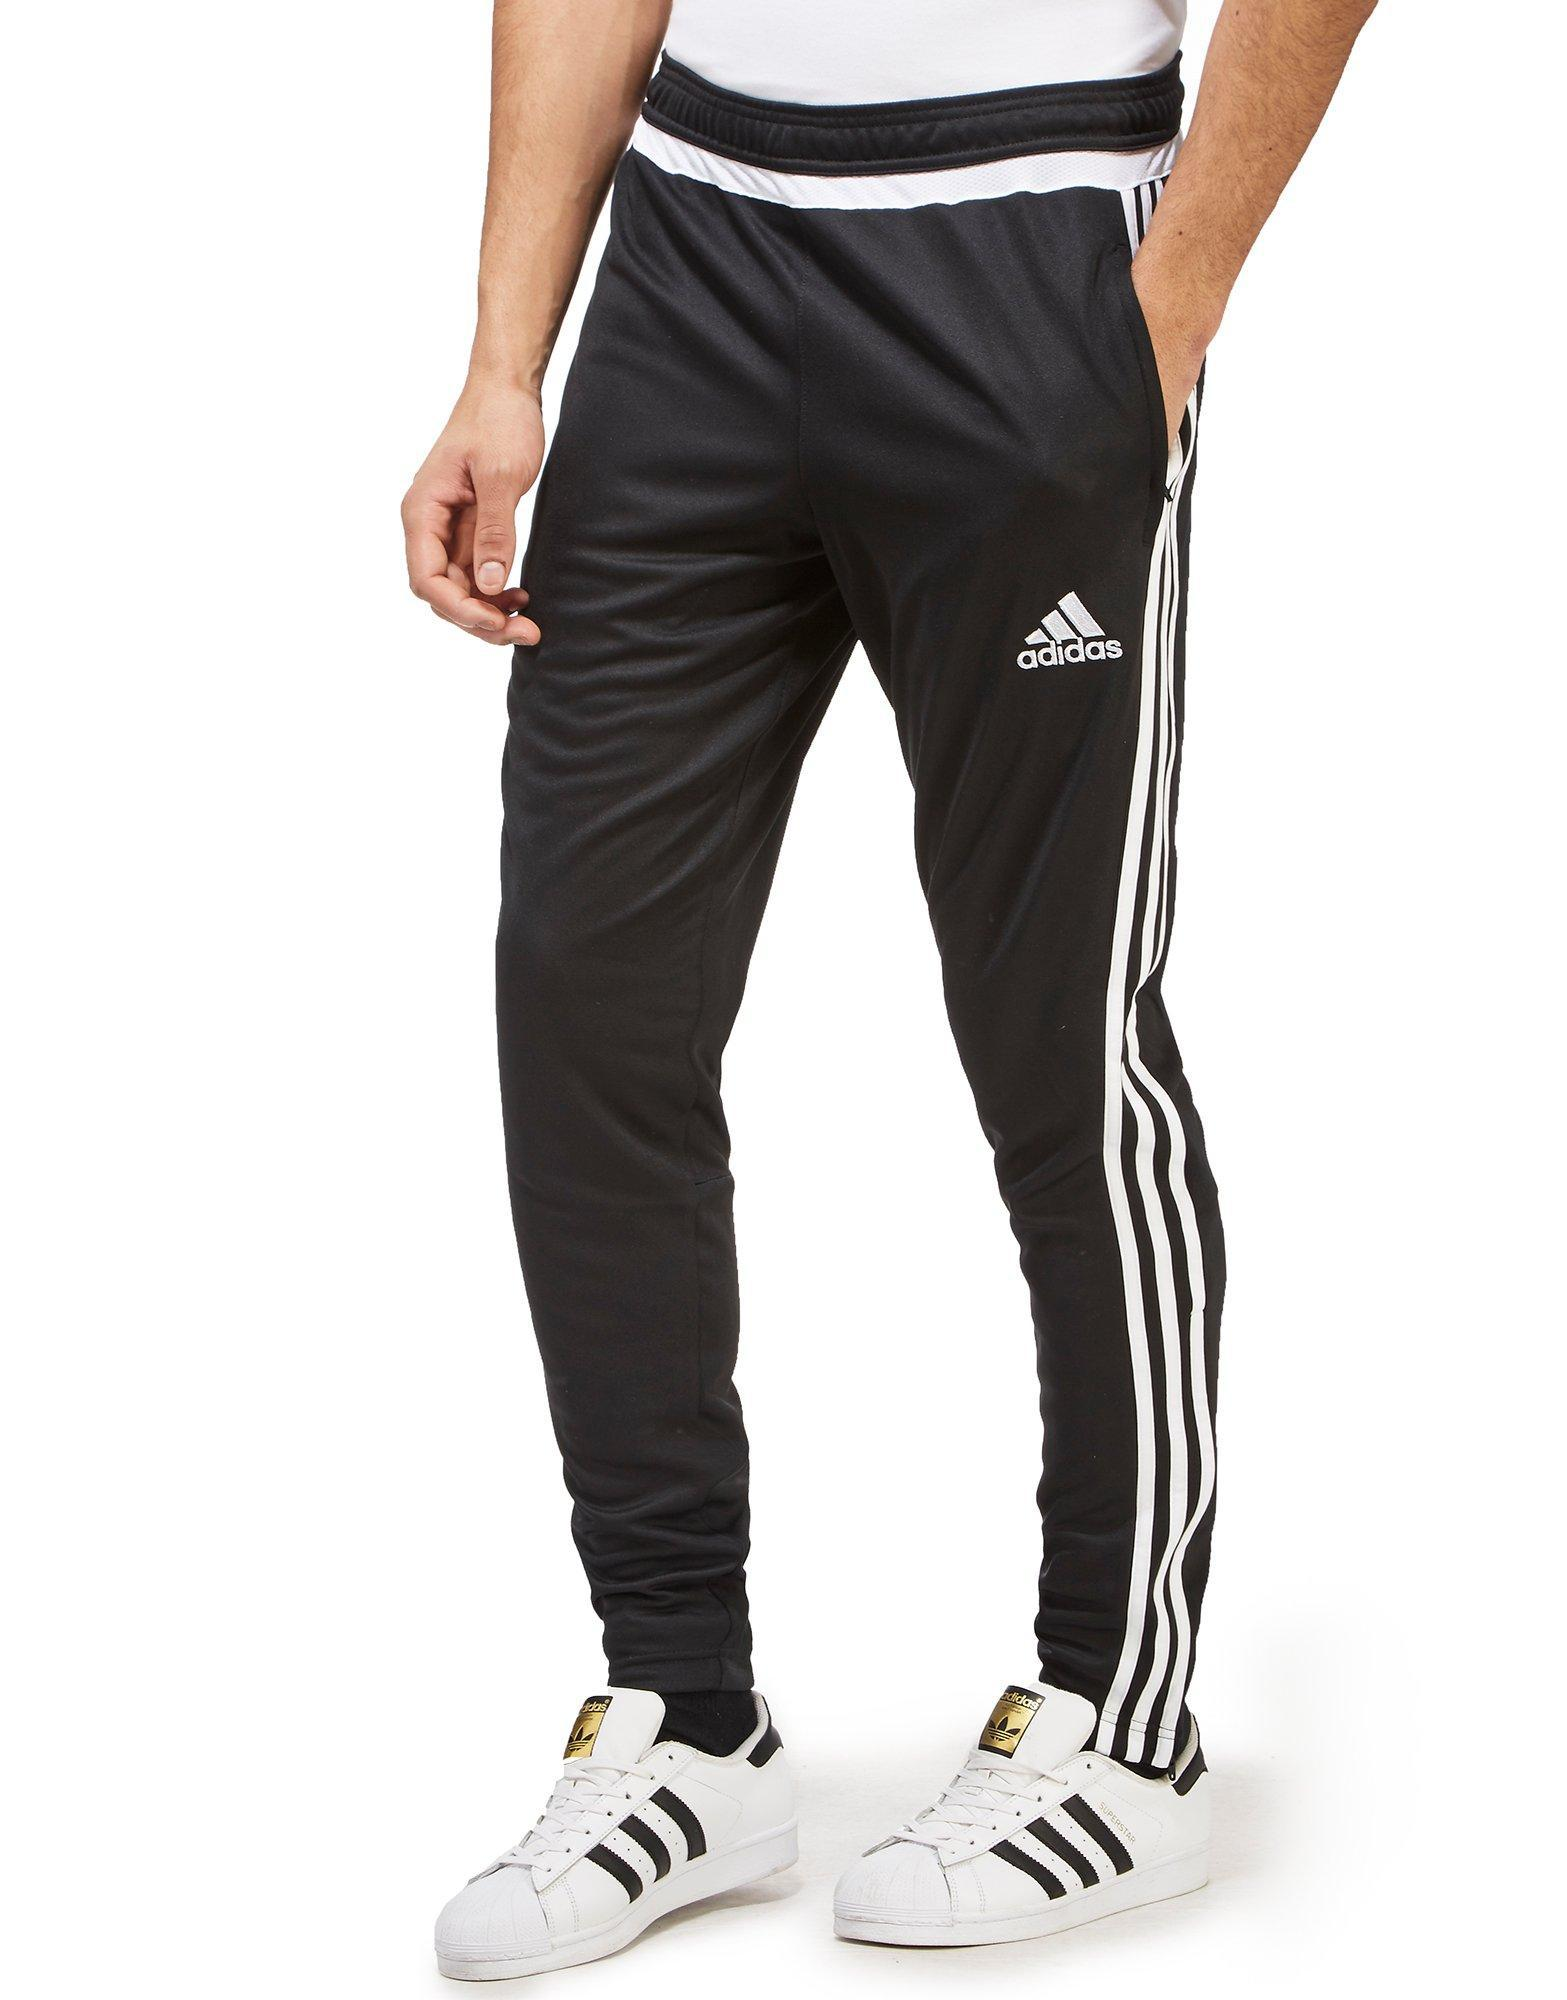 b10ae2ec5ce Lyst - adidas Tiro 15 Poly Training Pants in Black for Men